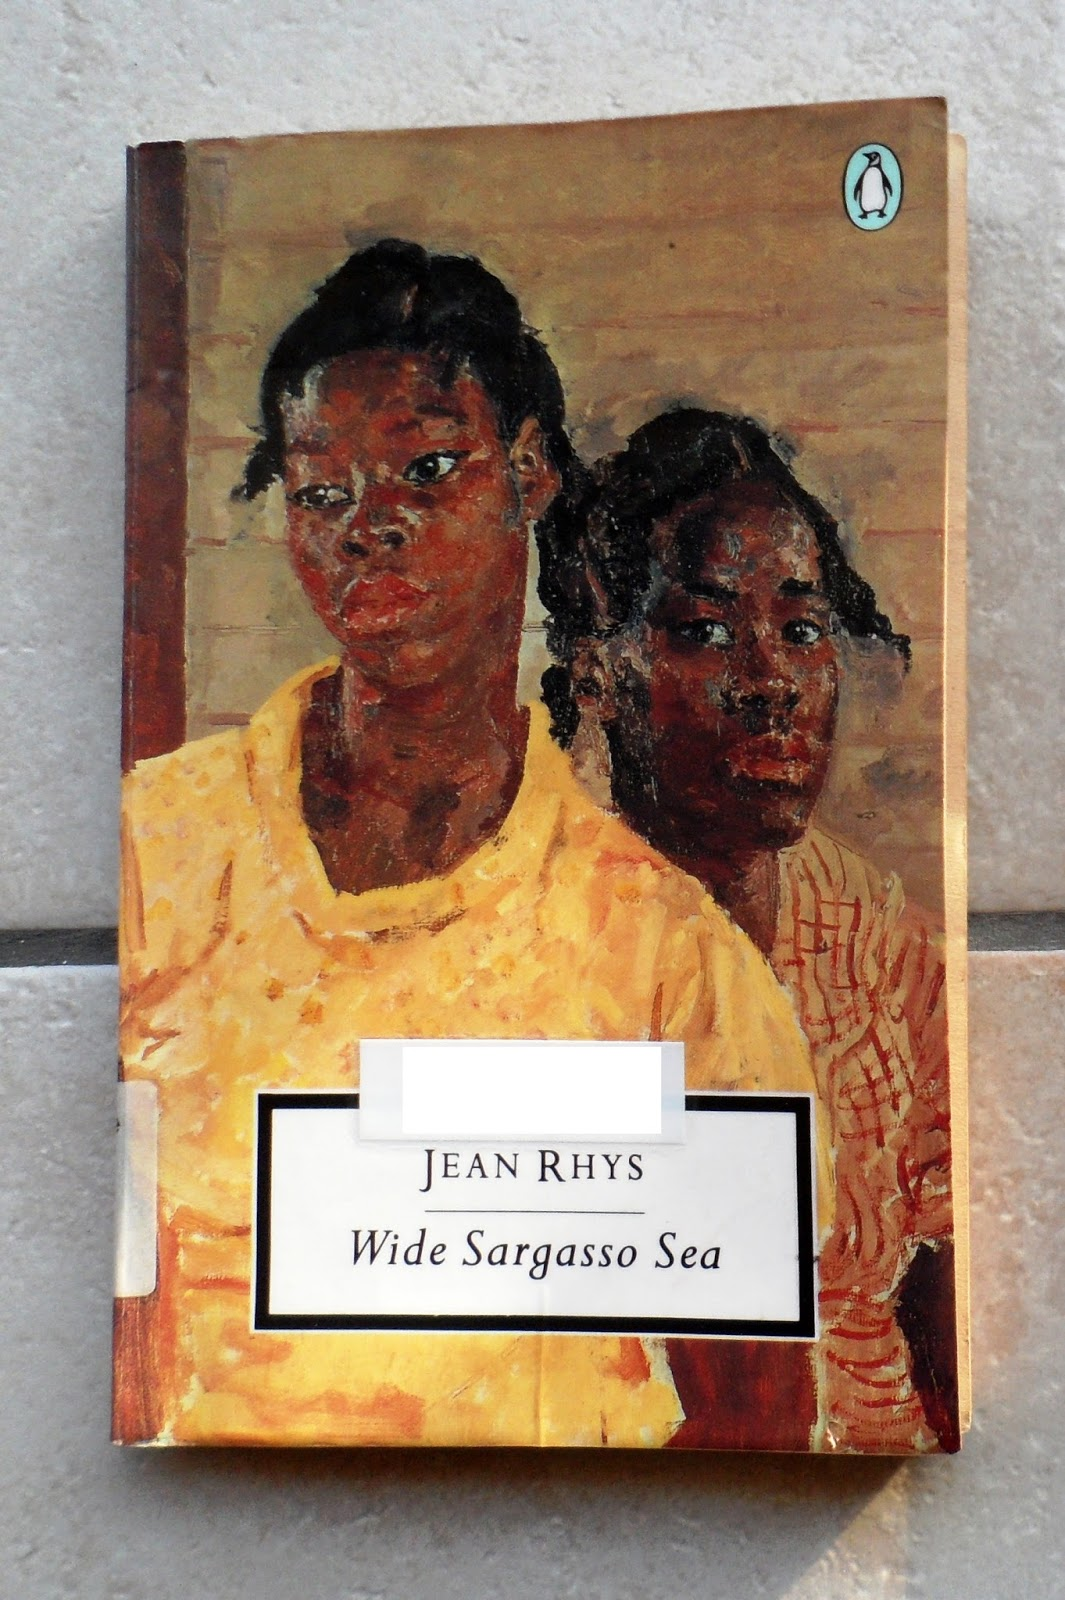 """wide sargasso sea by jean rhys essay Wide sargasso sea and the limits of bronte feminism  the rousing essay  ended with this call to arms: """"let us burn this  a 50th birthday, of jean rhys's  prequel to jane eyre: wide sargasso sea, published in 1966."""